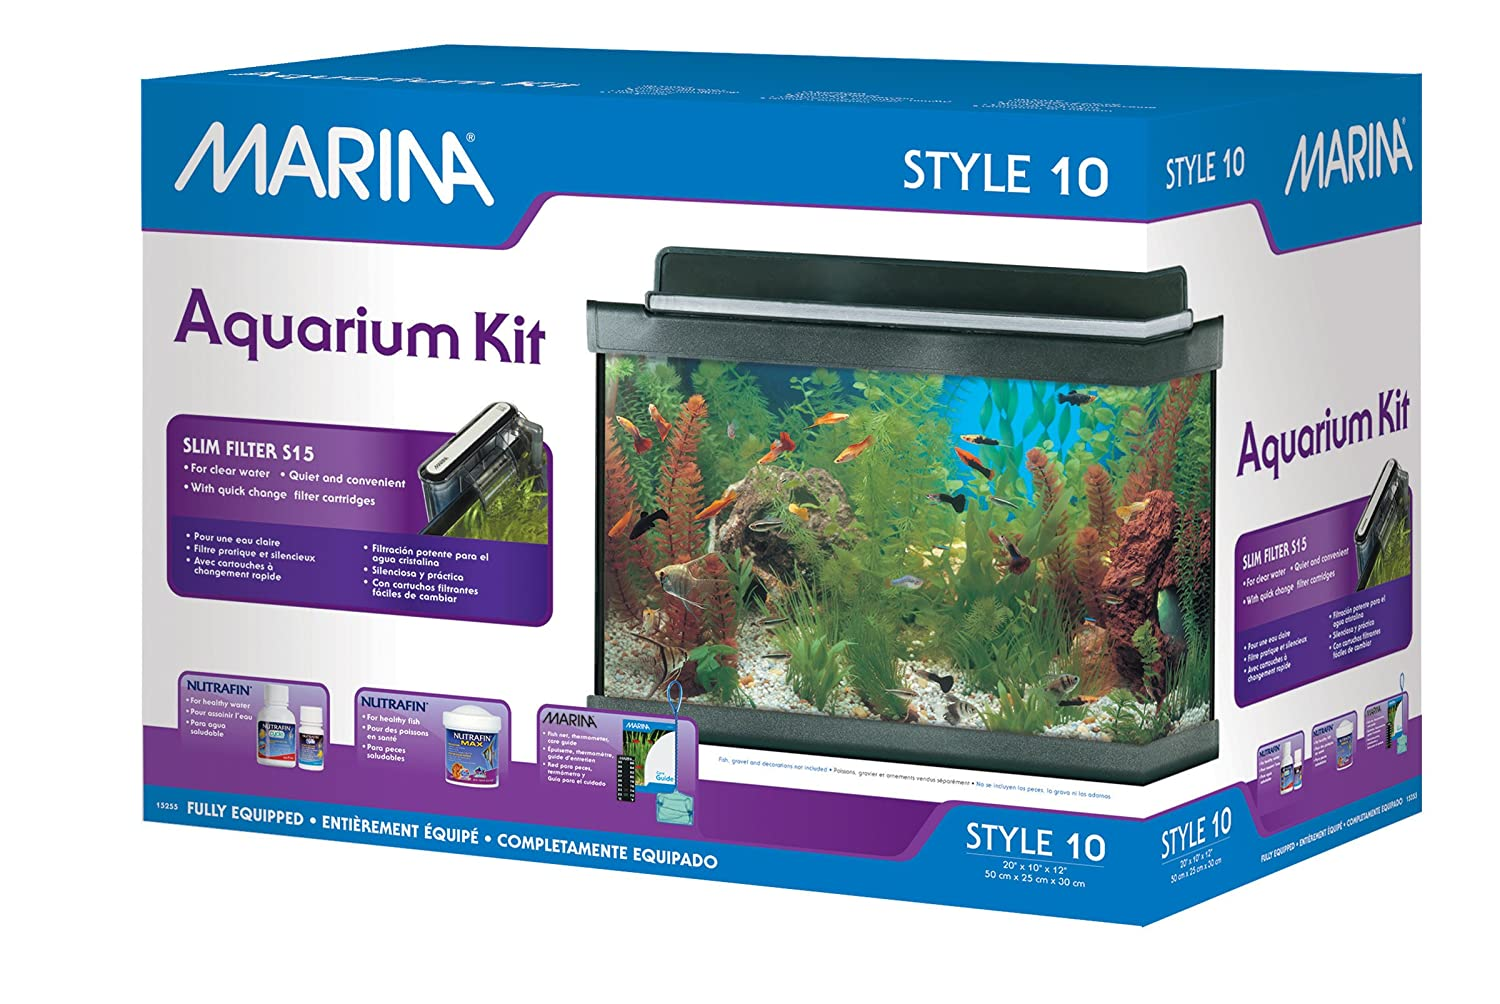 Fish tank heater 10 gallon - Amazon Com Marina Style 10 Aquarium Kit 10 Gallons Aquarium Starter Kits Pet Supplies